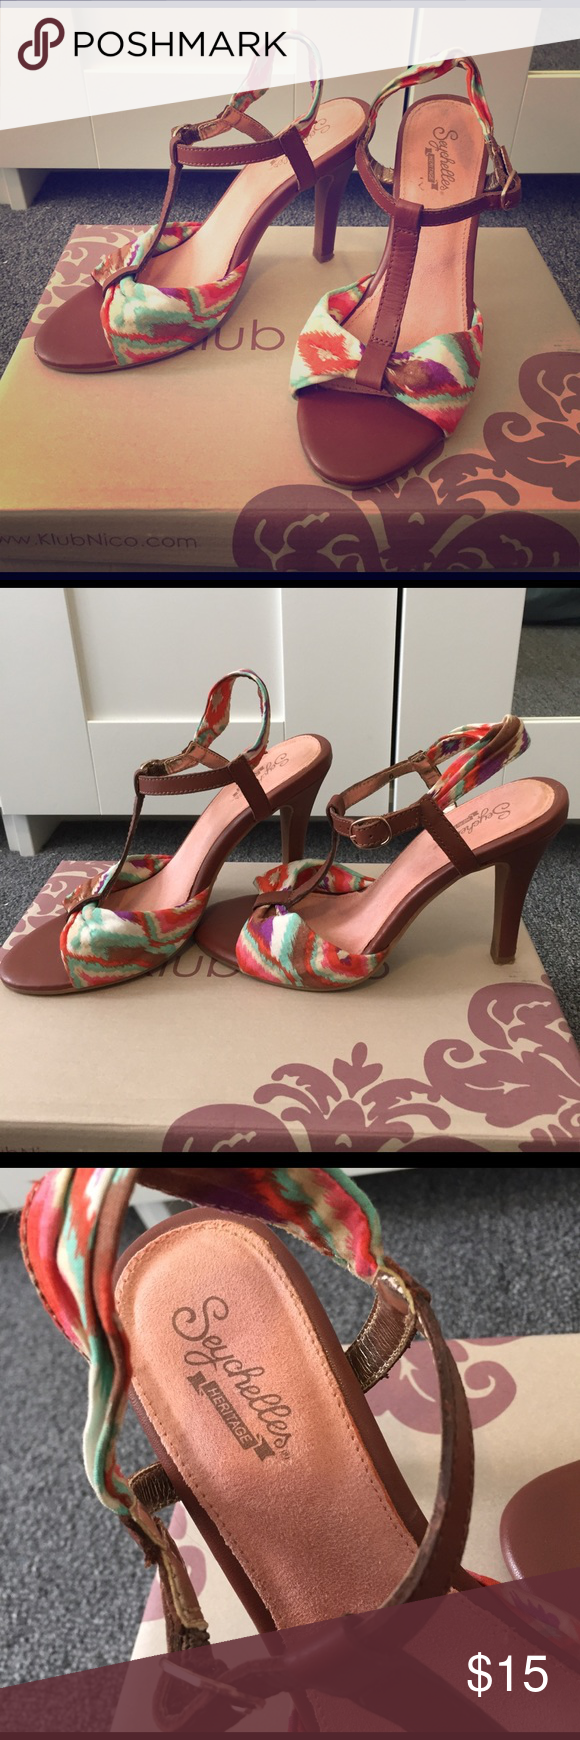 """Summer Heels Fun colorful summer heels with a leather buckle strap, fabric ankle strap and fun pattern. Original box not included. 3"""" heel with minimal wear.  Slight scuff in front right toe. Seychelles Shoes Heels"""